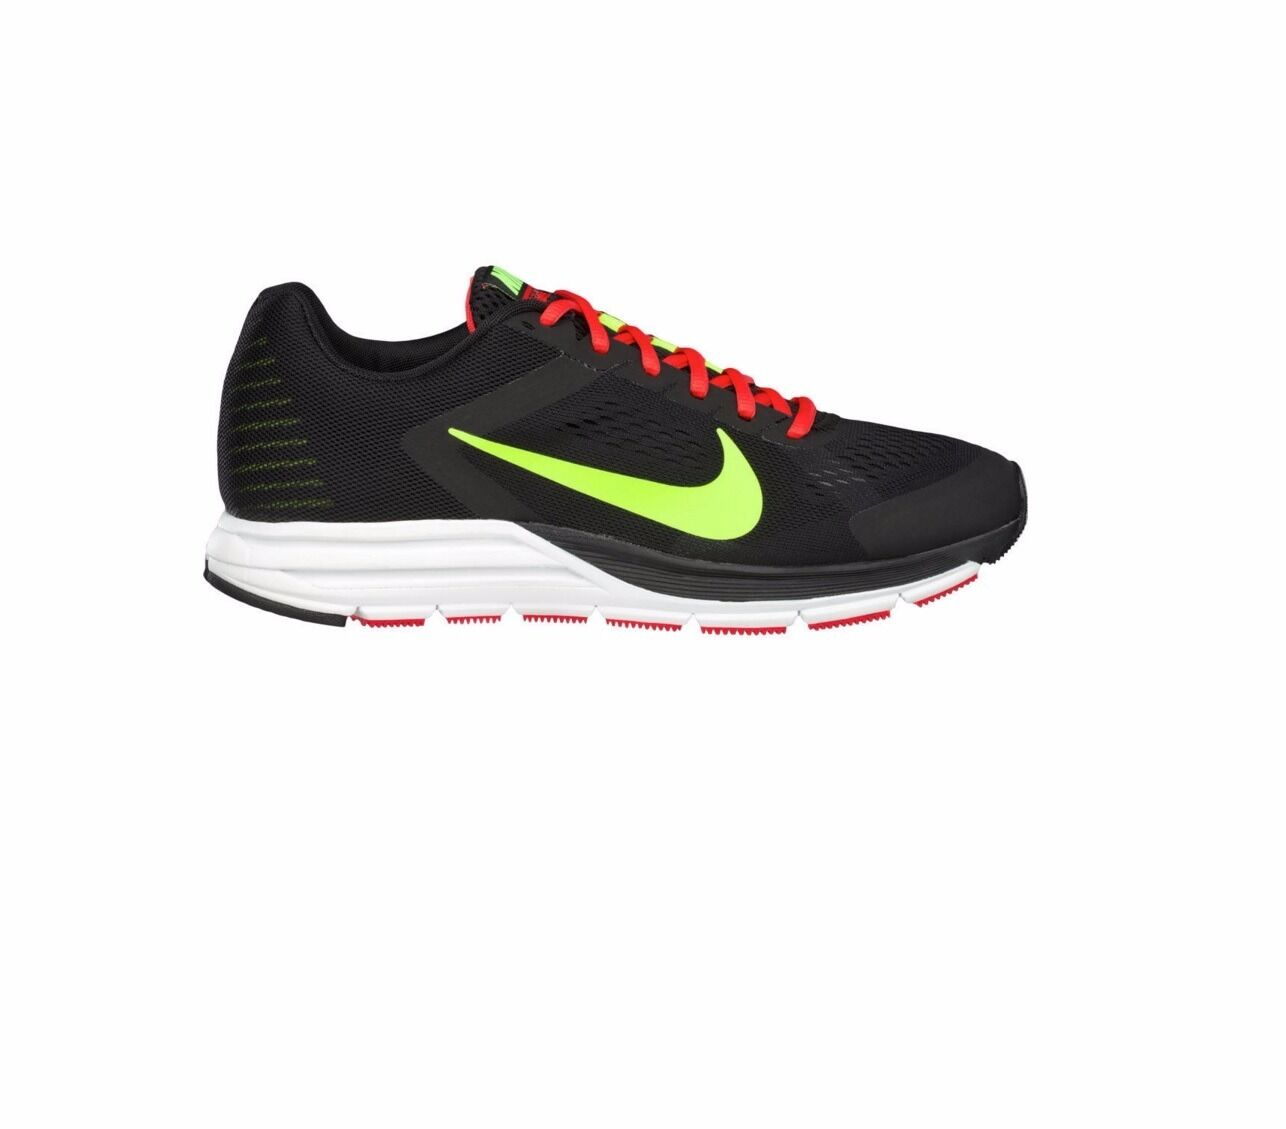 NIKE ZOOM STRUCTURE + 17 UK SIZE SIZE SIZE 7 - 10 NEW RUNNING TRAINERS Schuhe BLACK RARE 6c84f6